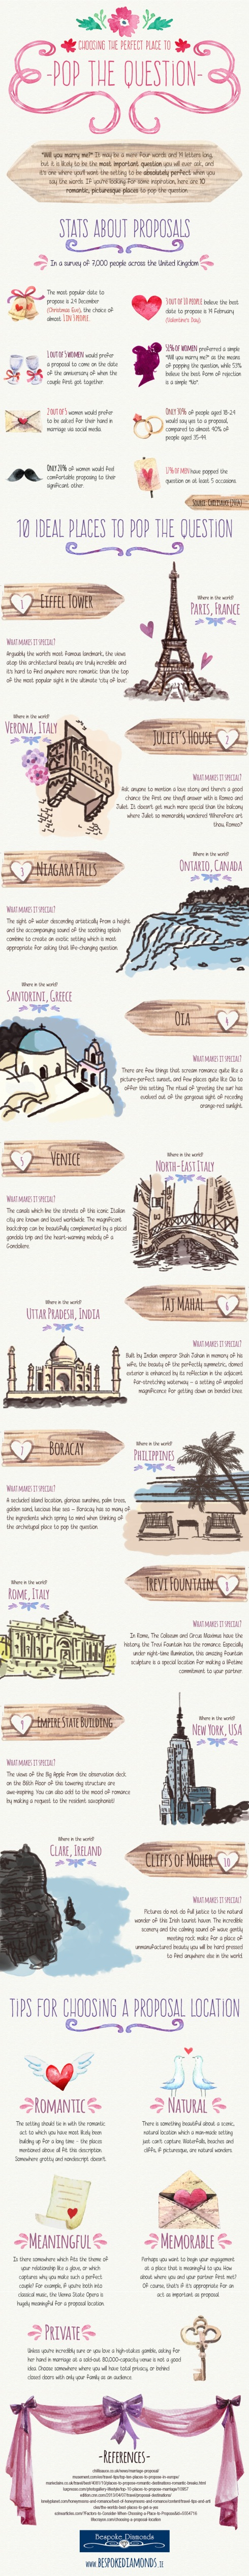 Proposal-Locations-Infographic-Bespoke-Diamonds (2)